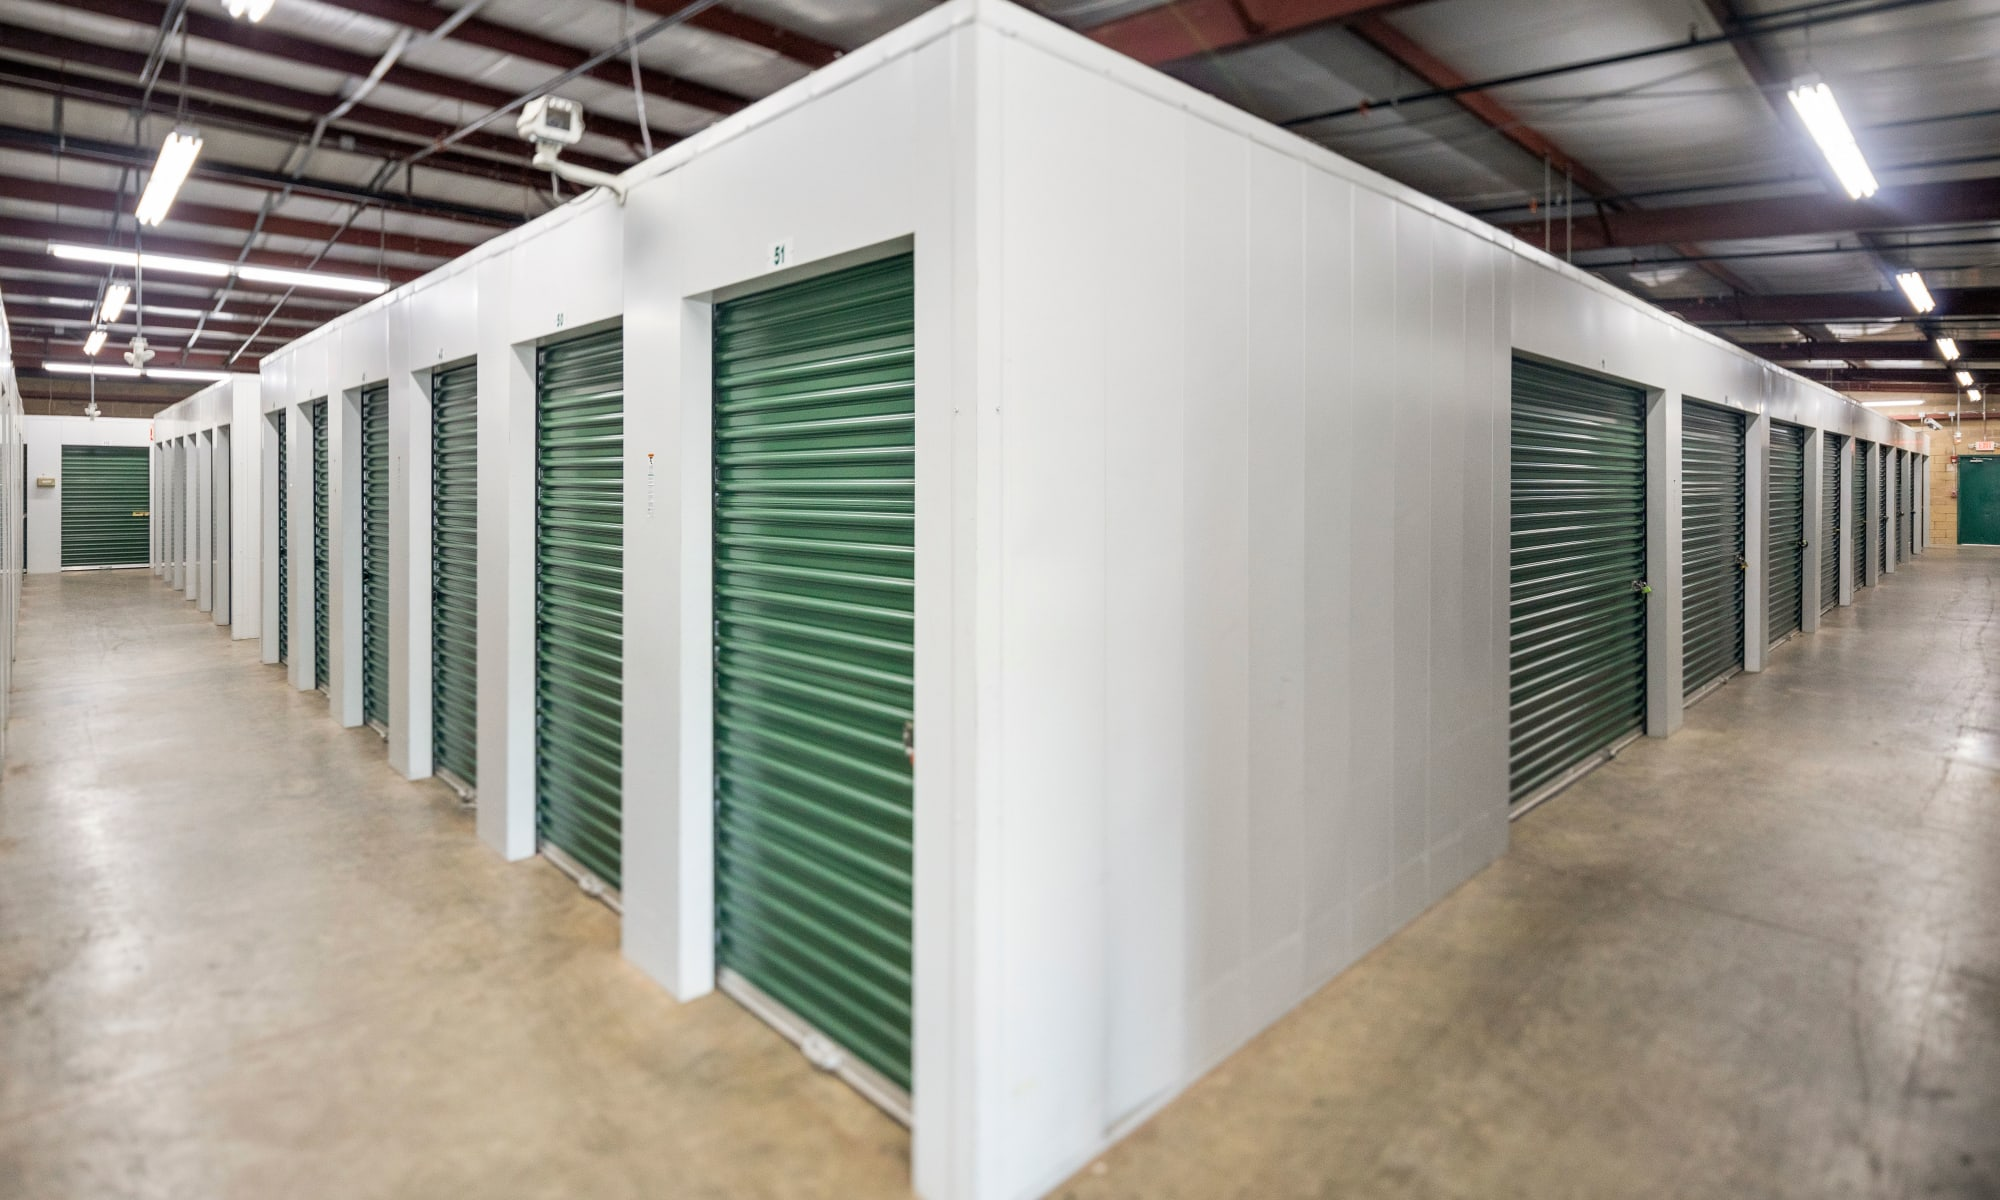 Citizen Storage offers self storage options in Olive Branch, Mississippi